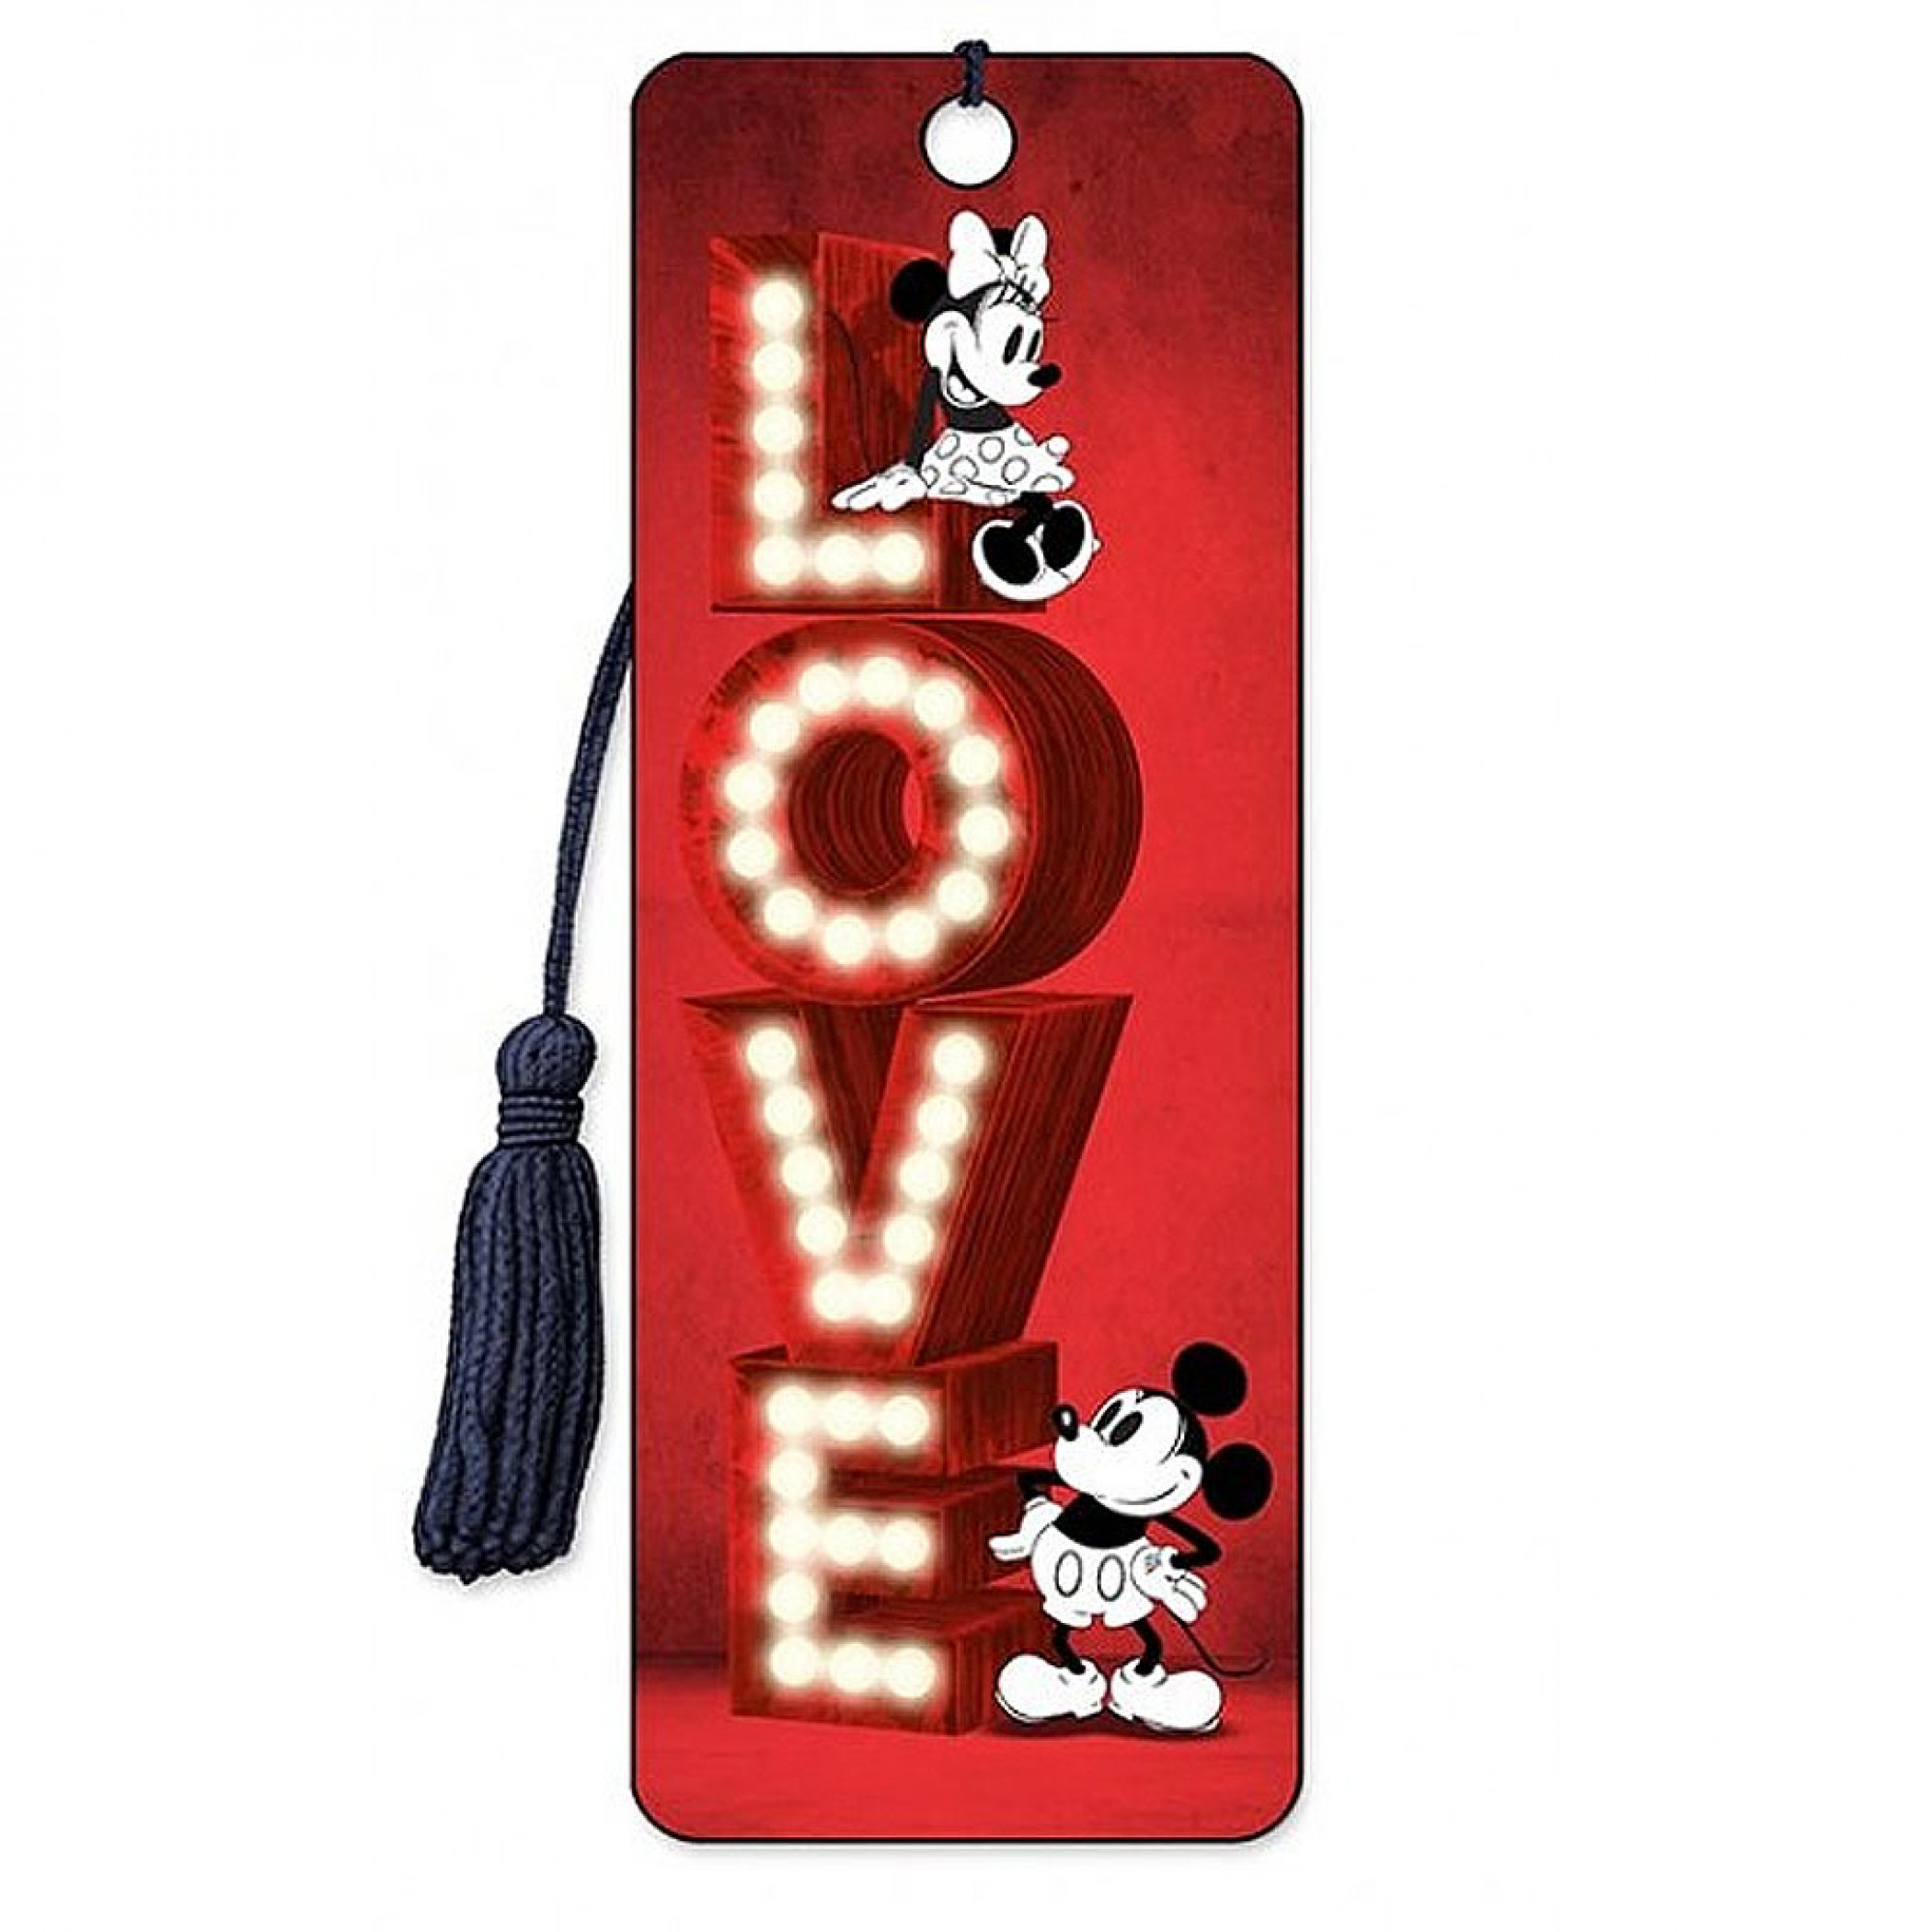 Mickey and Minnie Love 3D Moving Image Love Bookmark